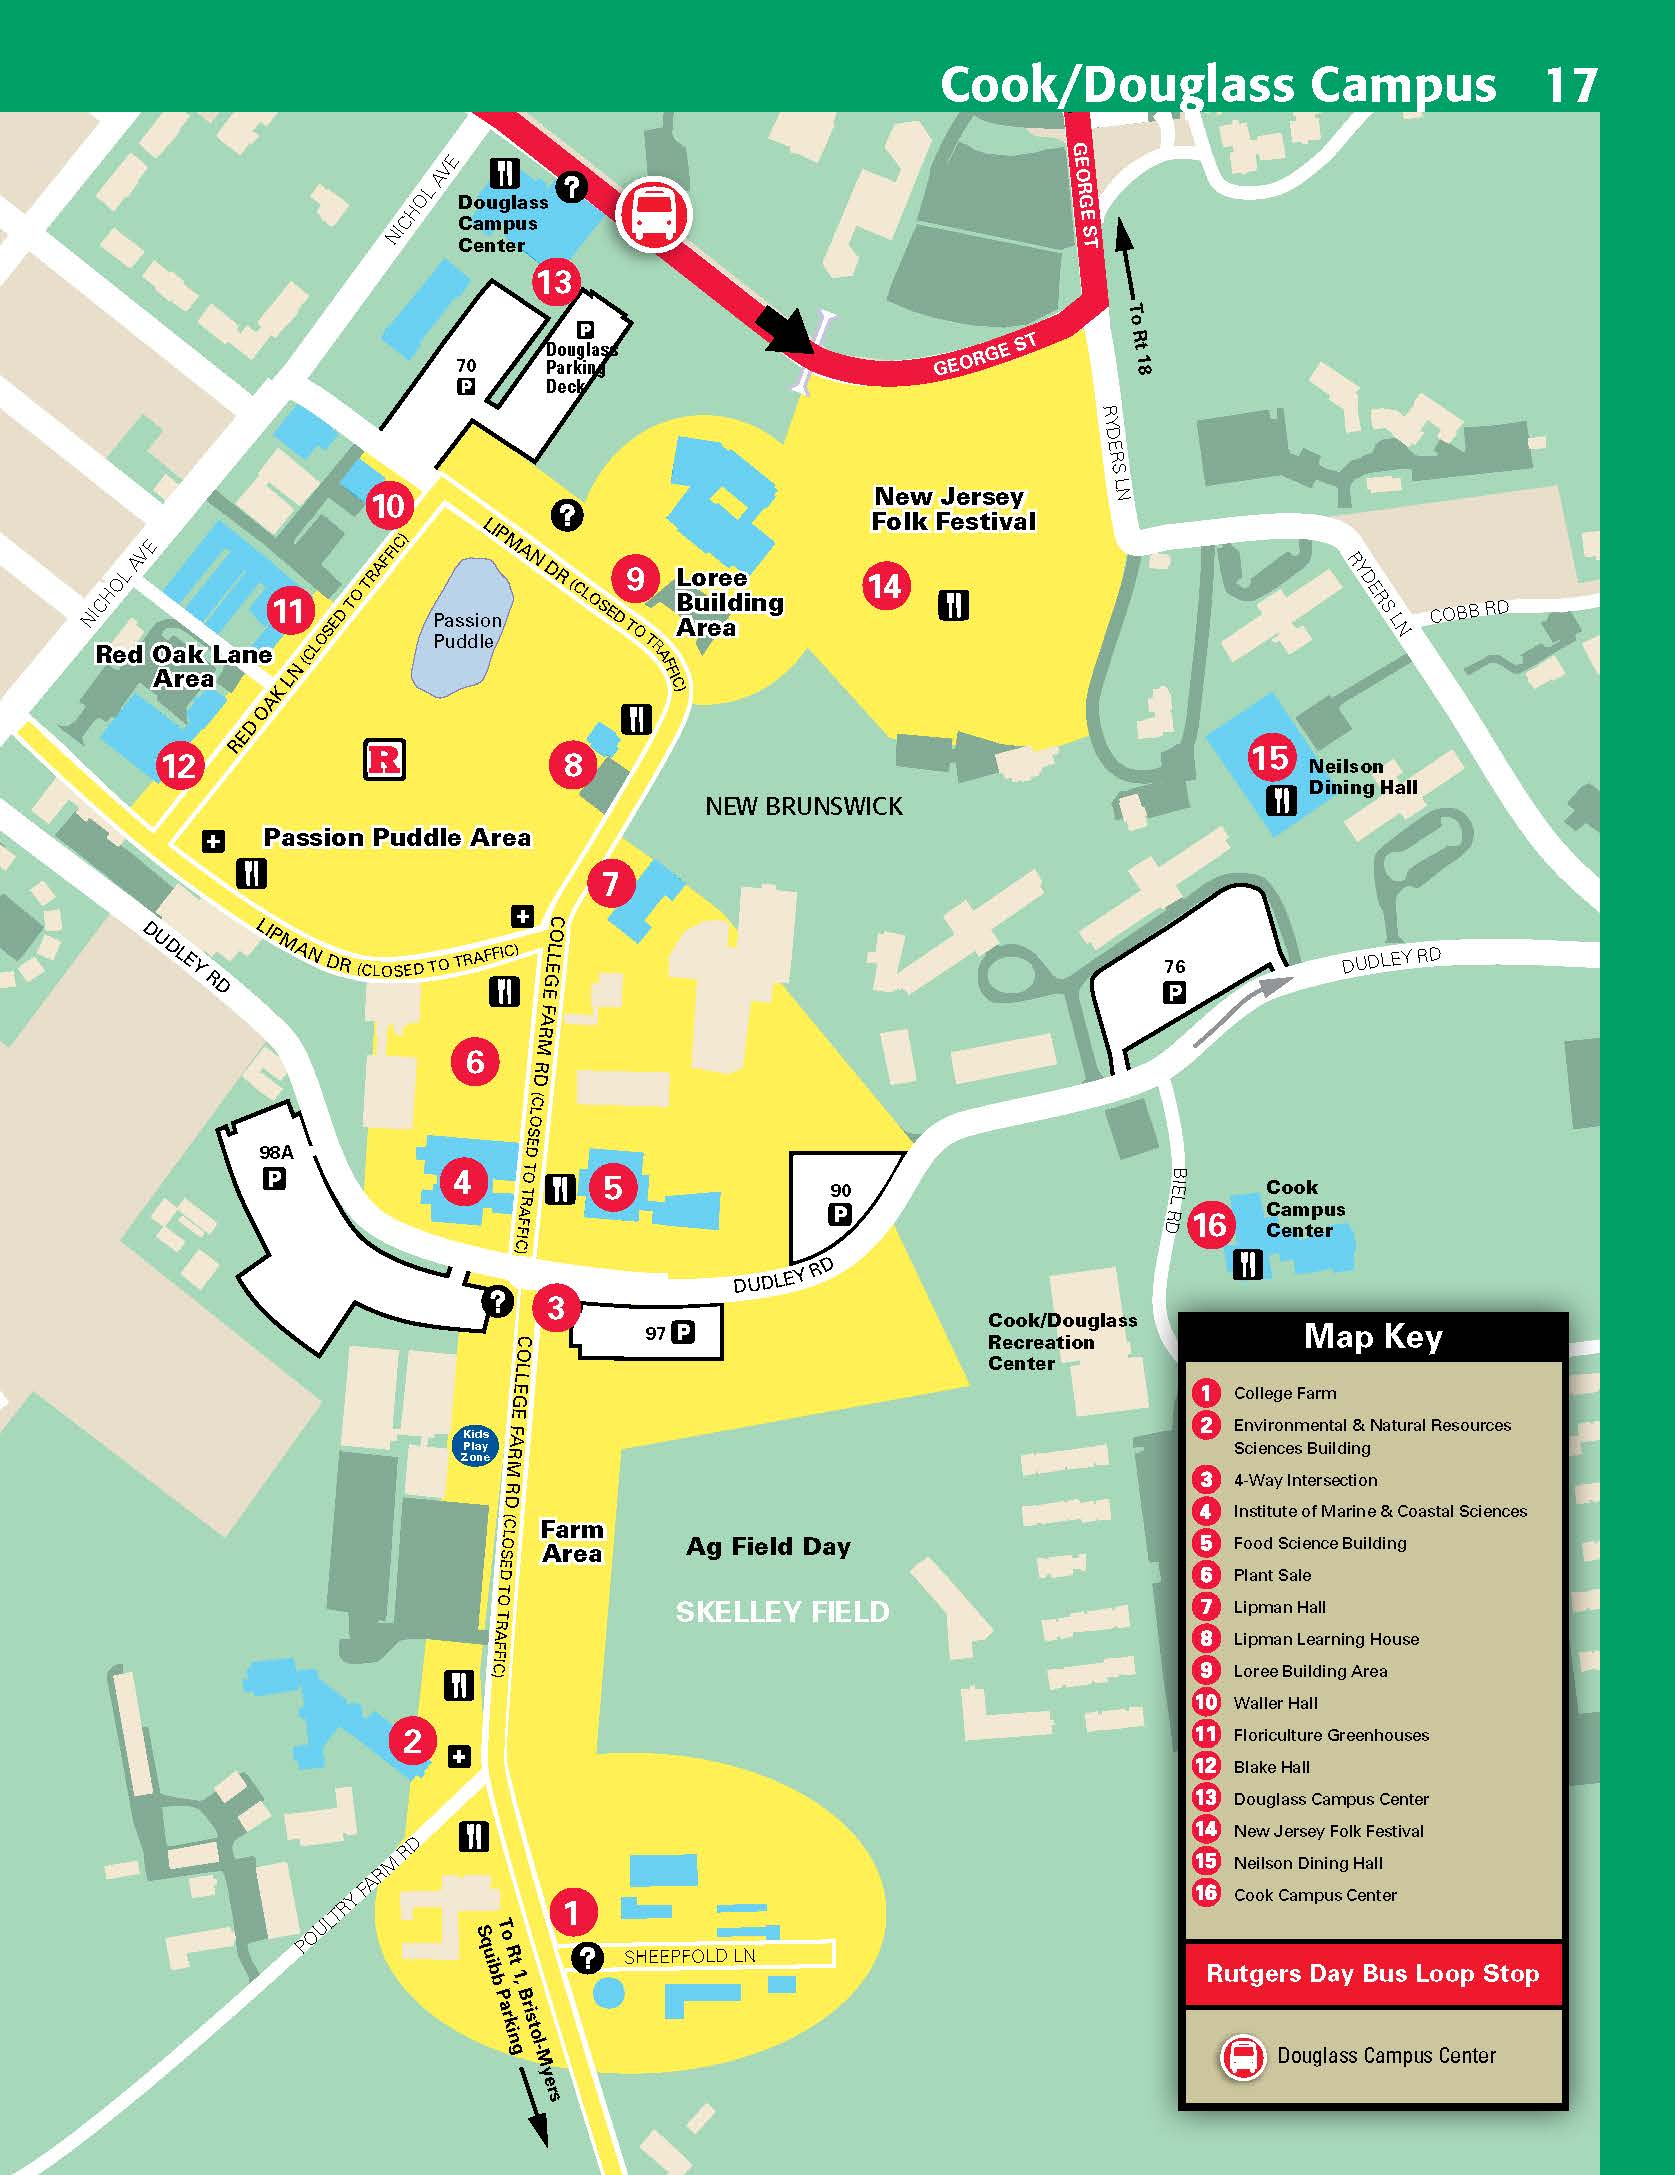 Rutgers Douglass Campus Map.Back Once Again Rutgers Day In Its 2013 Edition Saturday 27 April